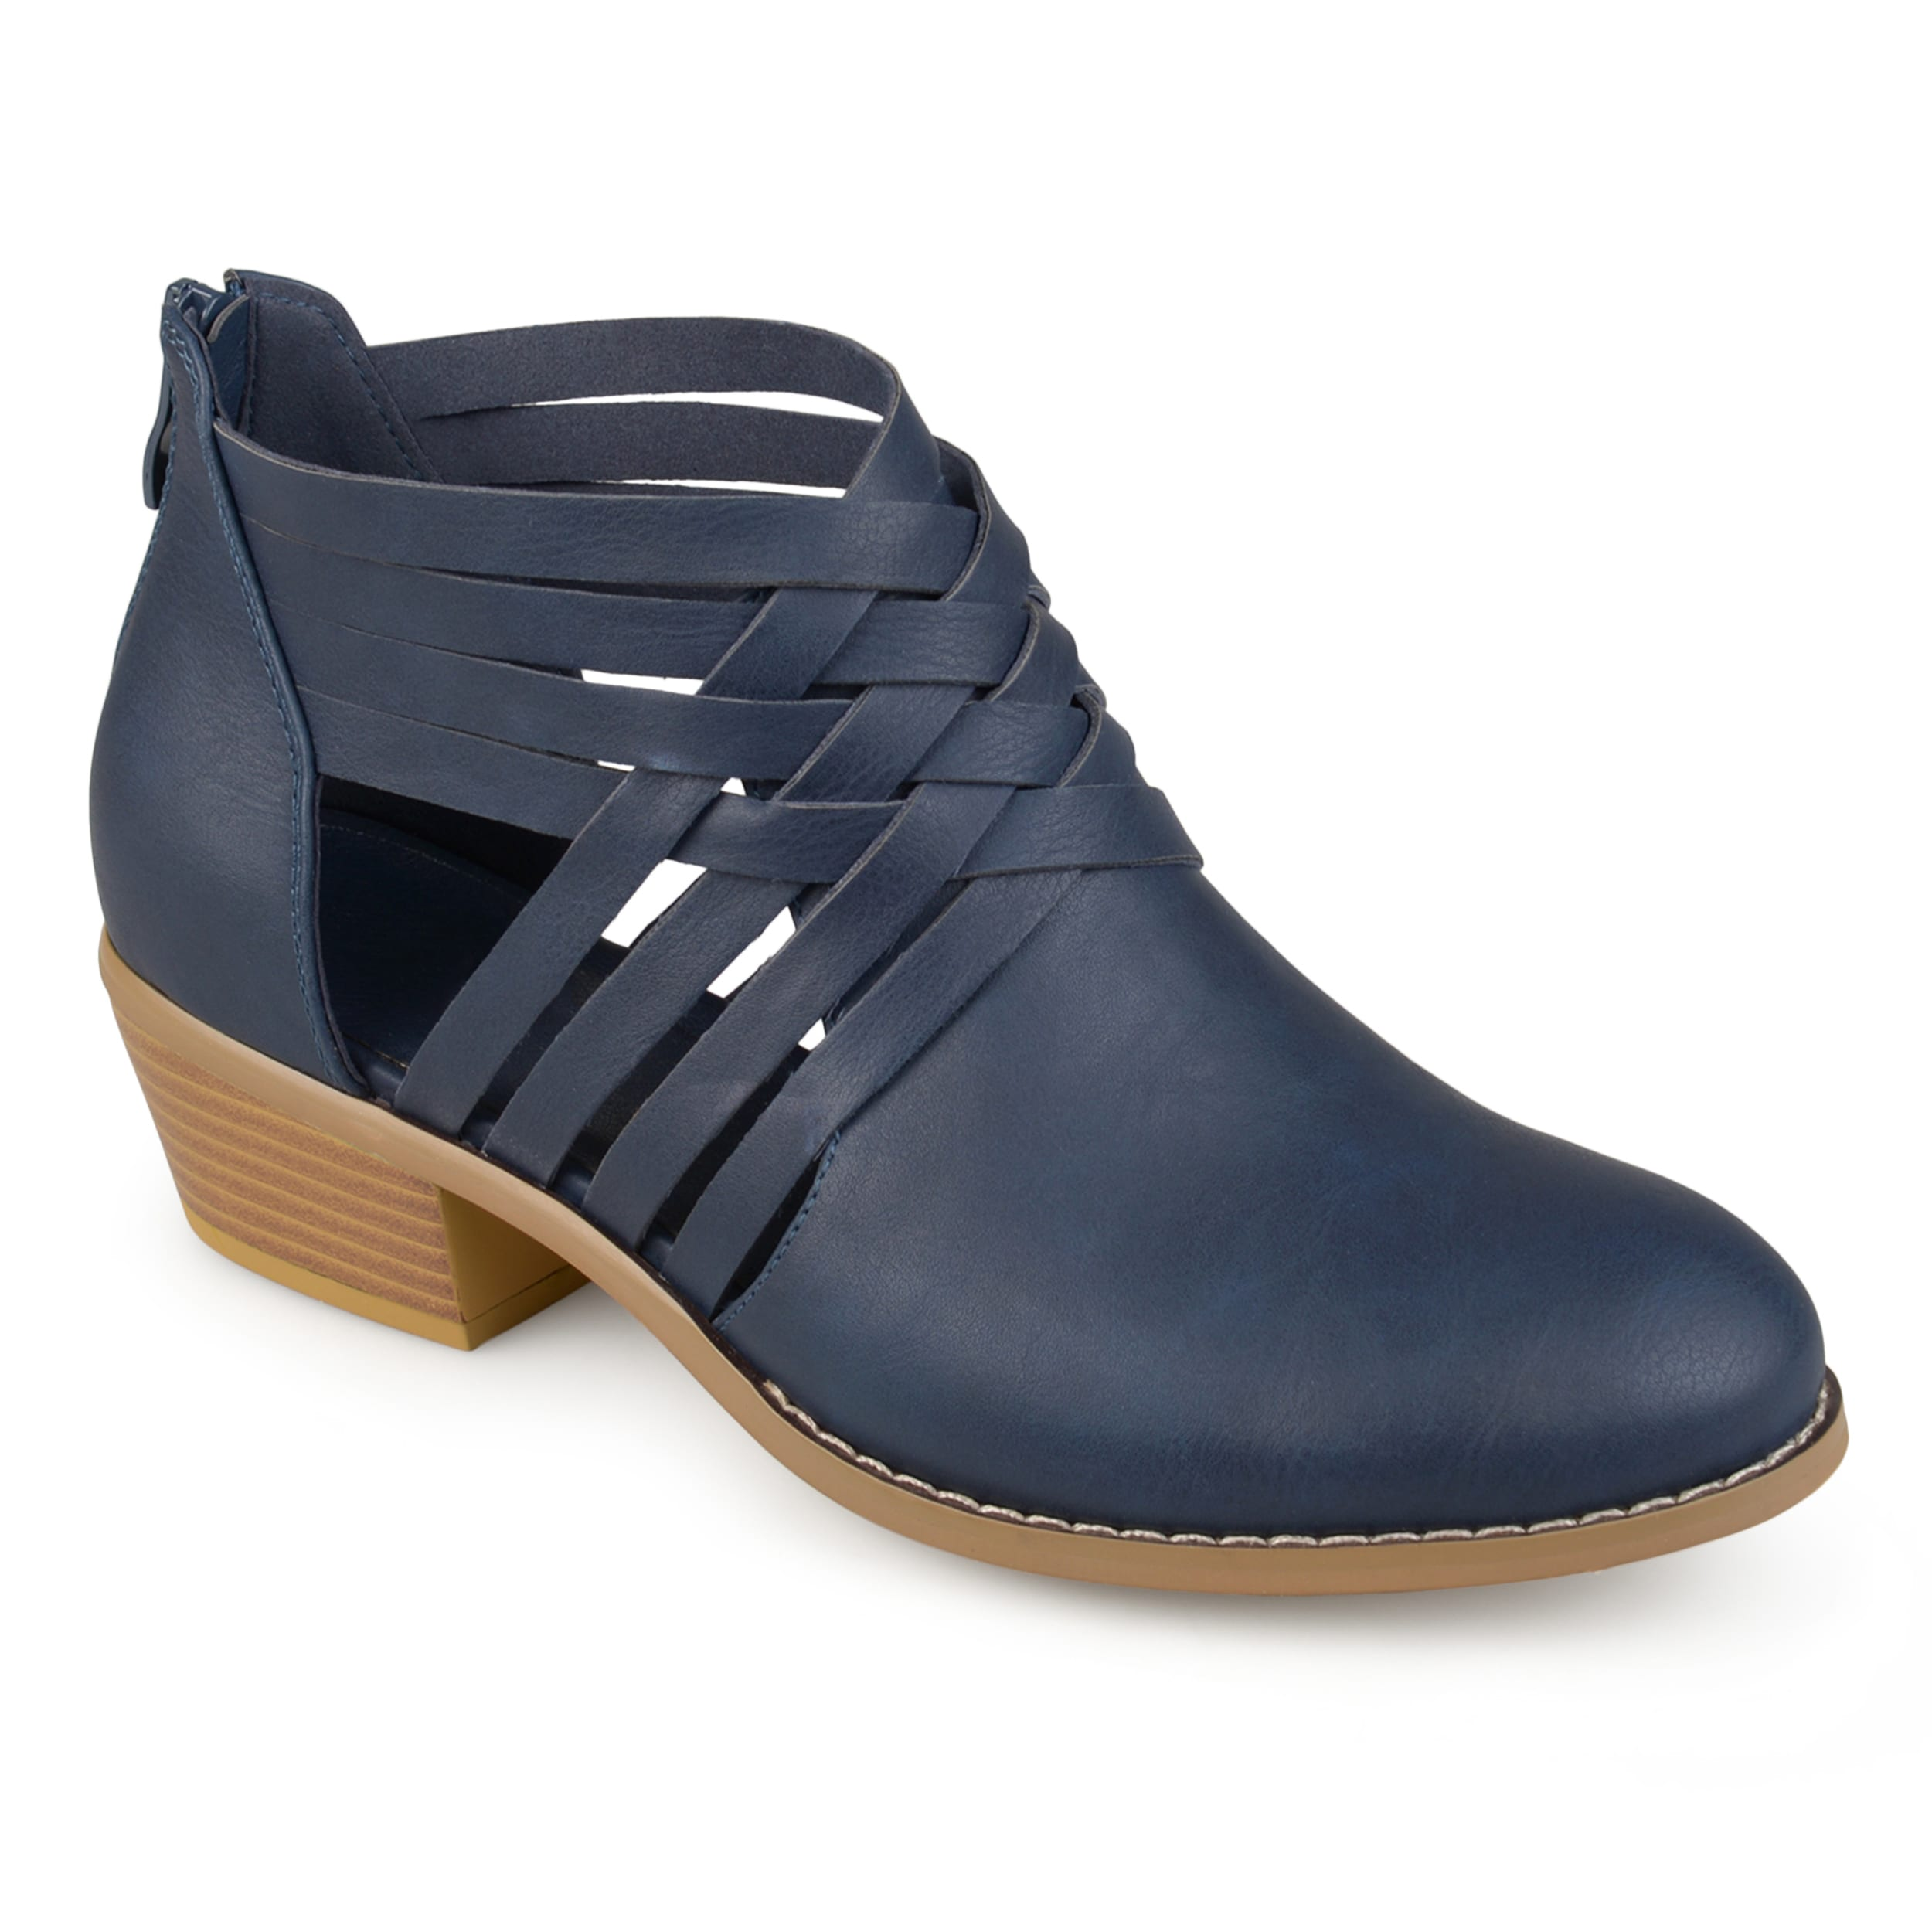 Journee Collection Thelma ... Women's Ankle Boots sale with credit card sale the cheapest visit limited edition sale online g8nbEfKw